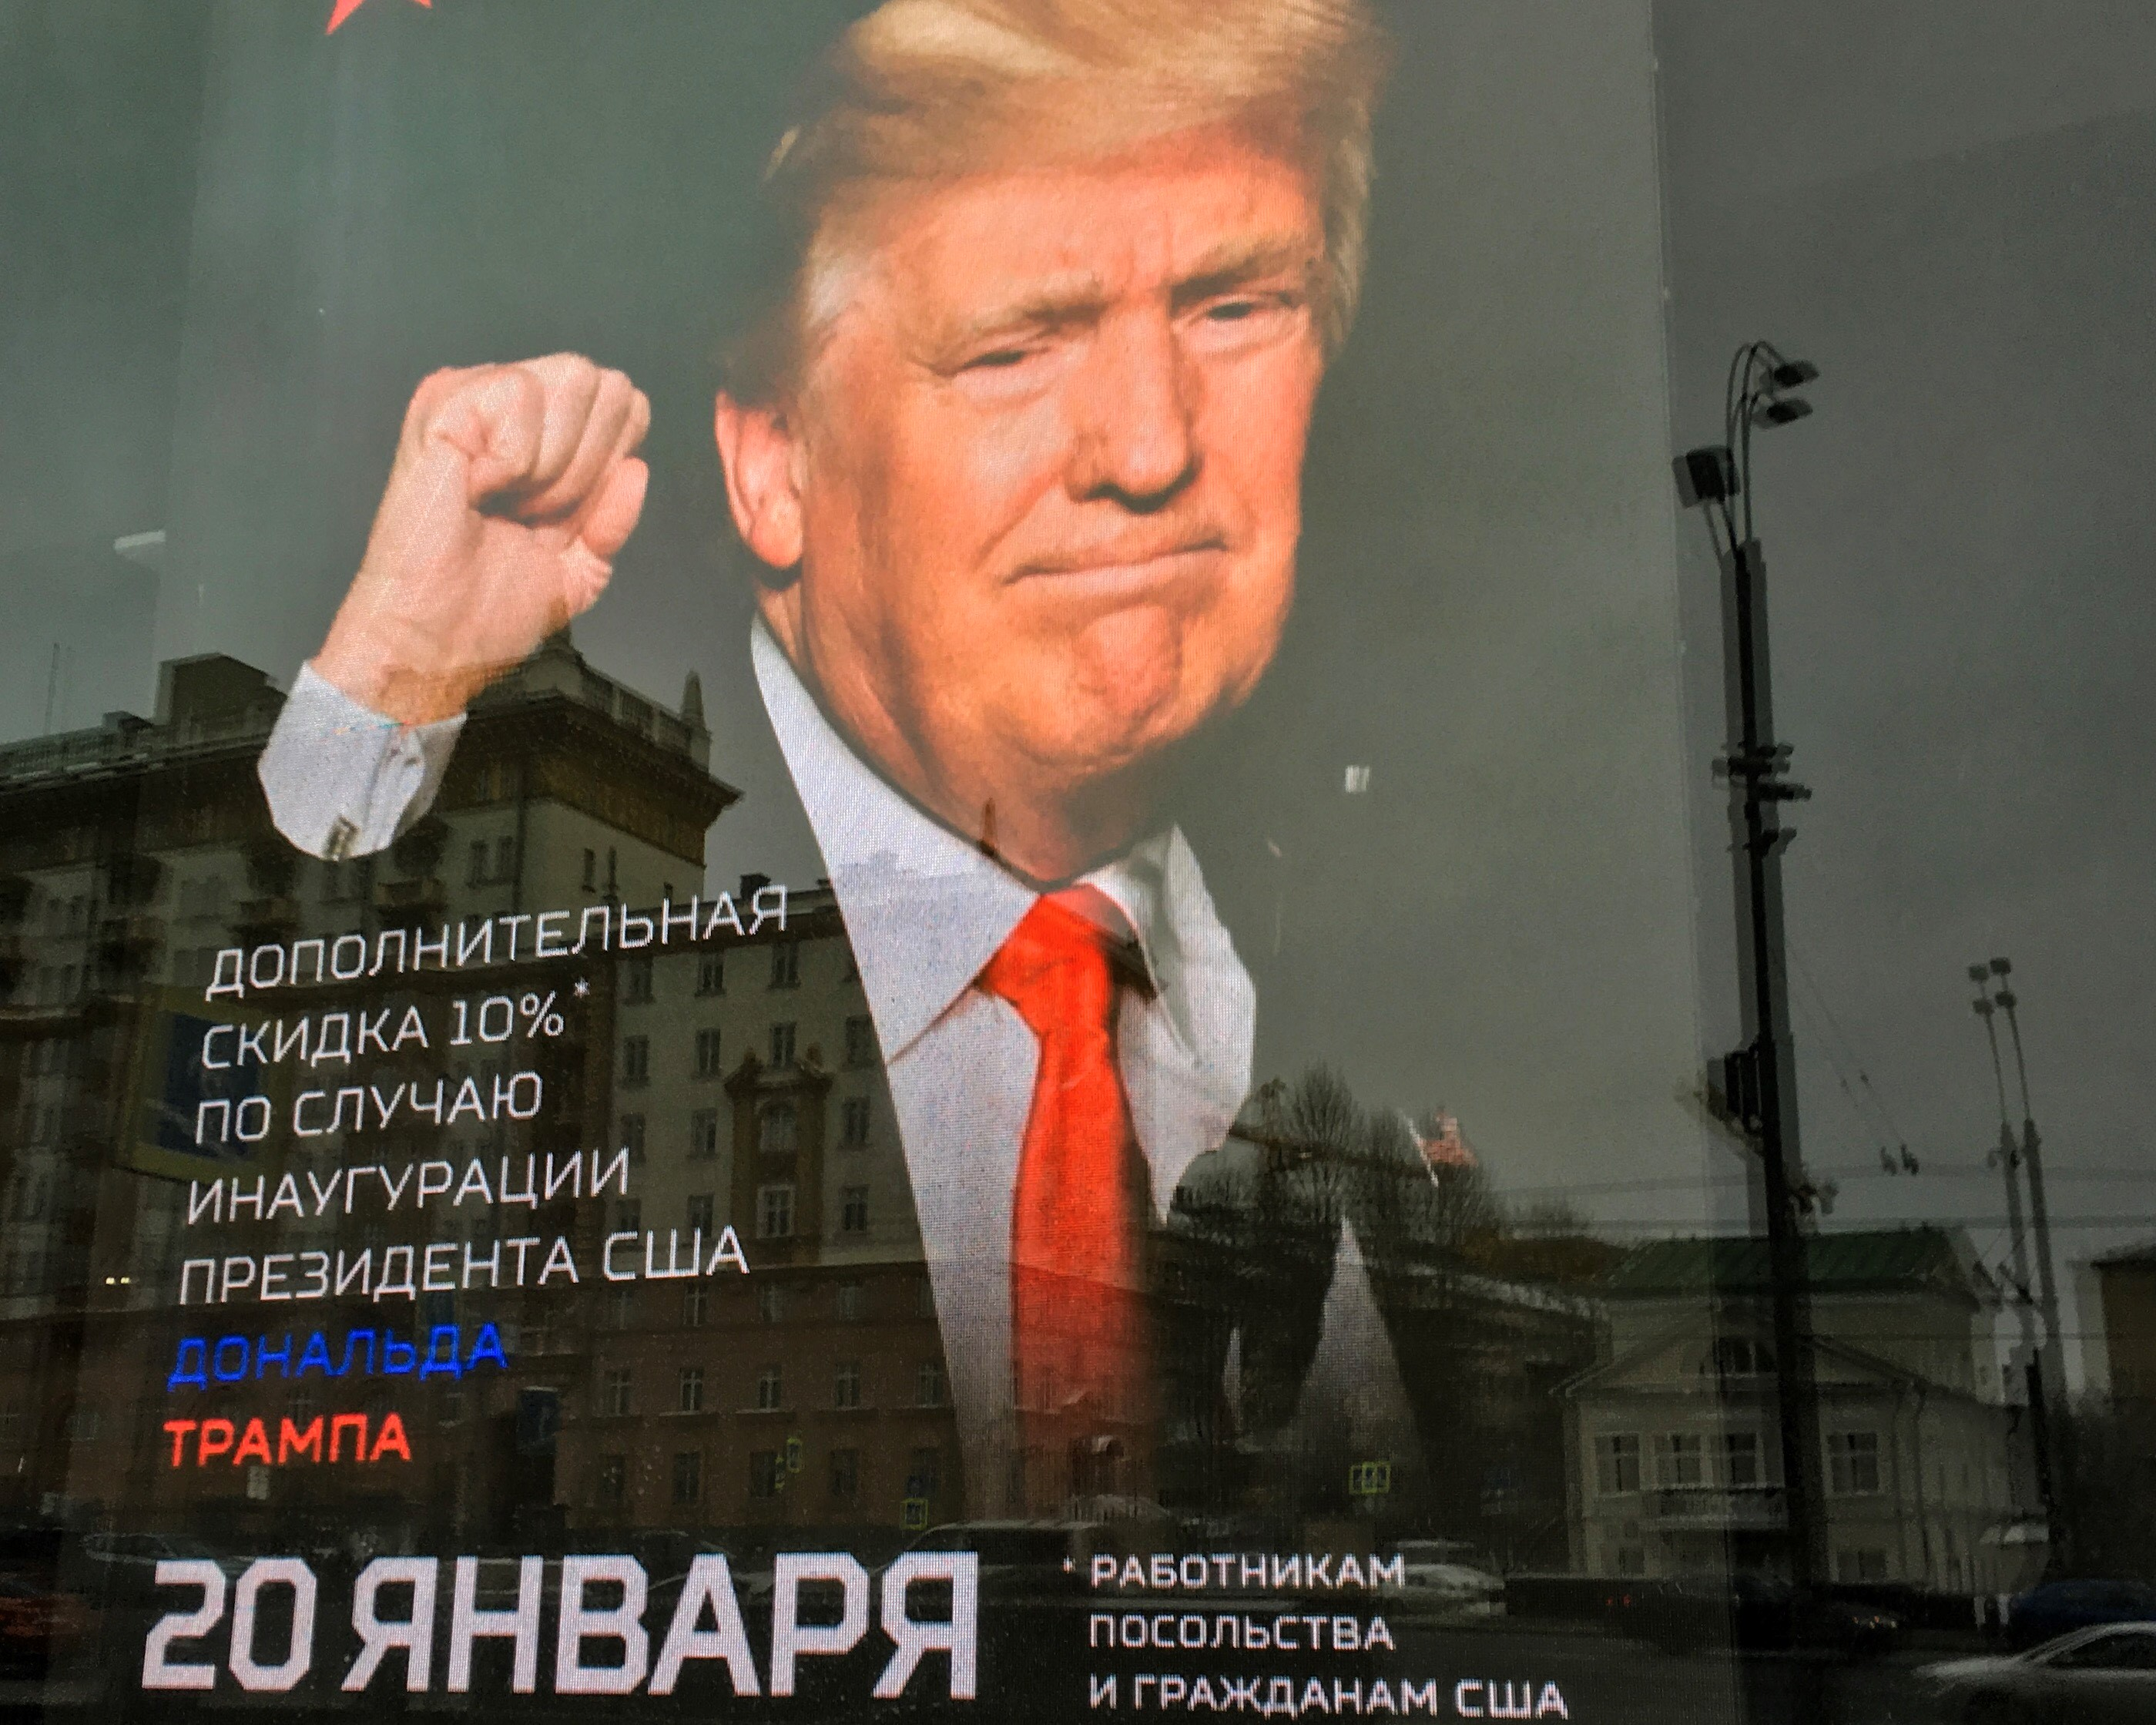 Moscow gives in to Trumpomania as inauguration nears